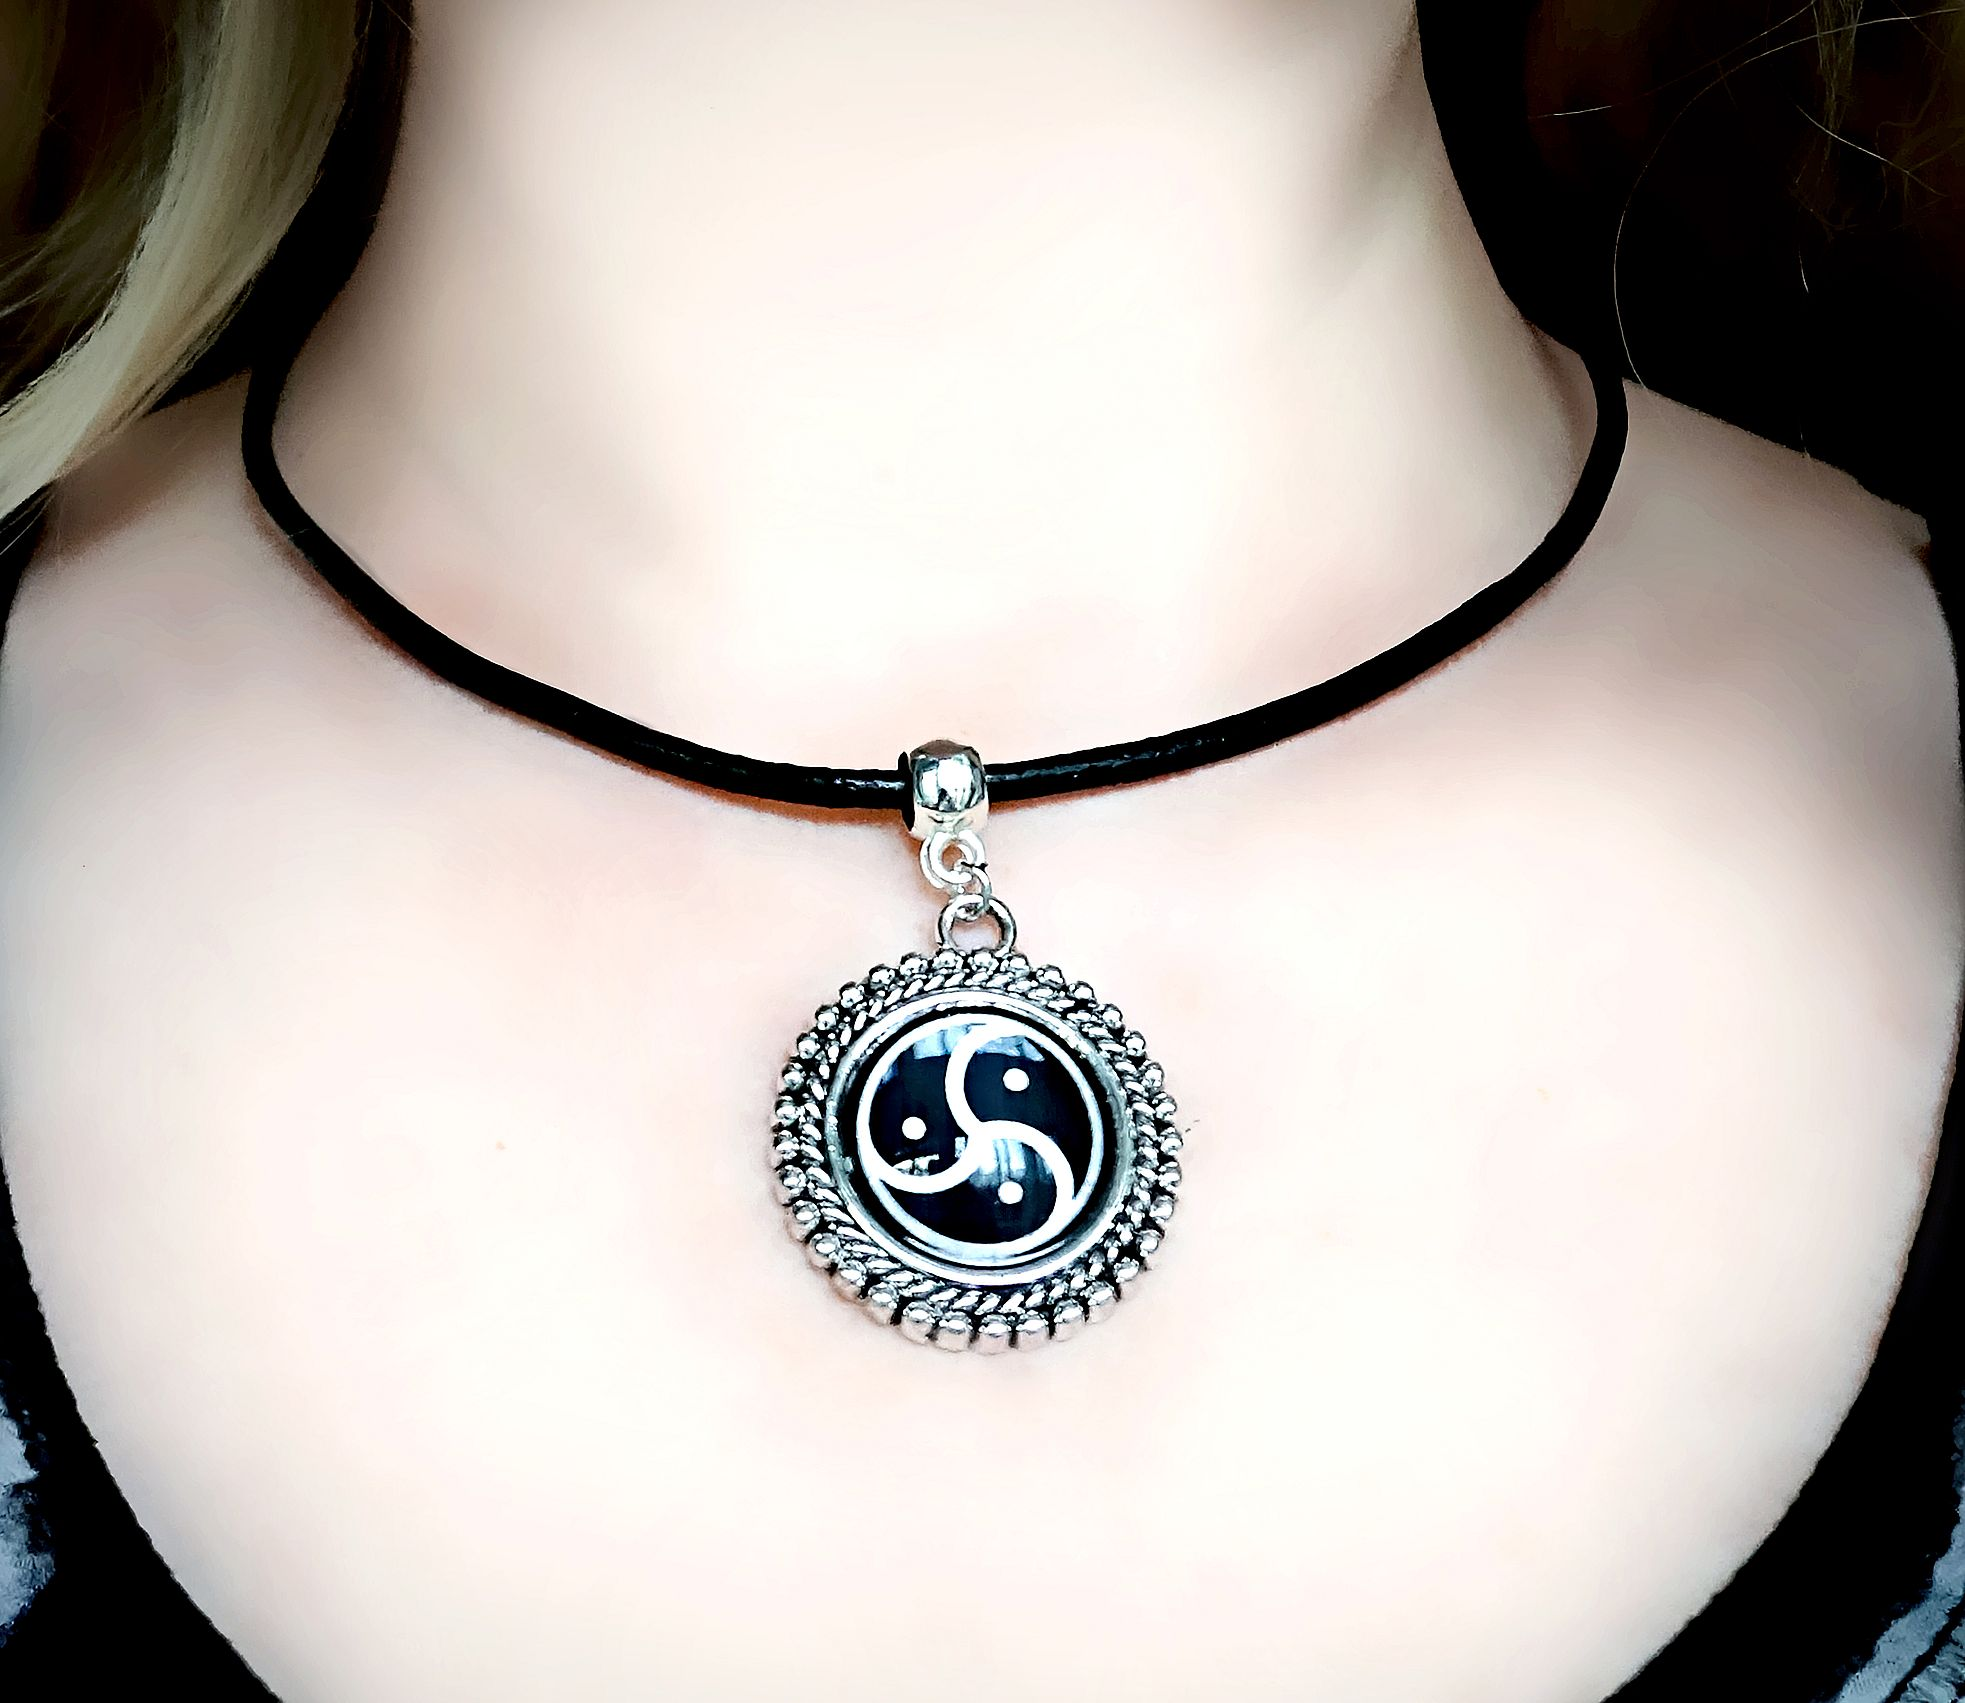 Submissive collar BDSM jewelry triskele triskelion